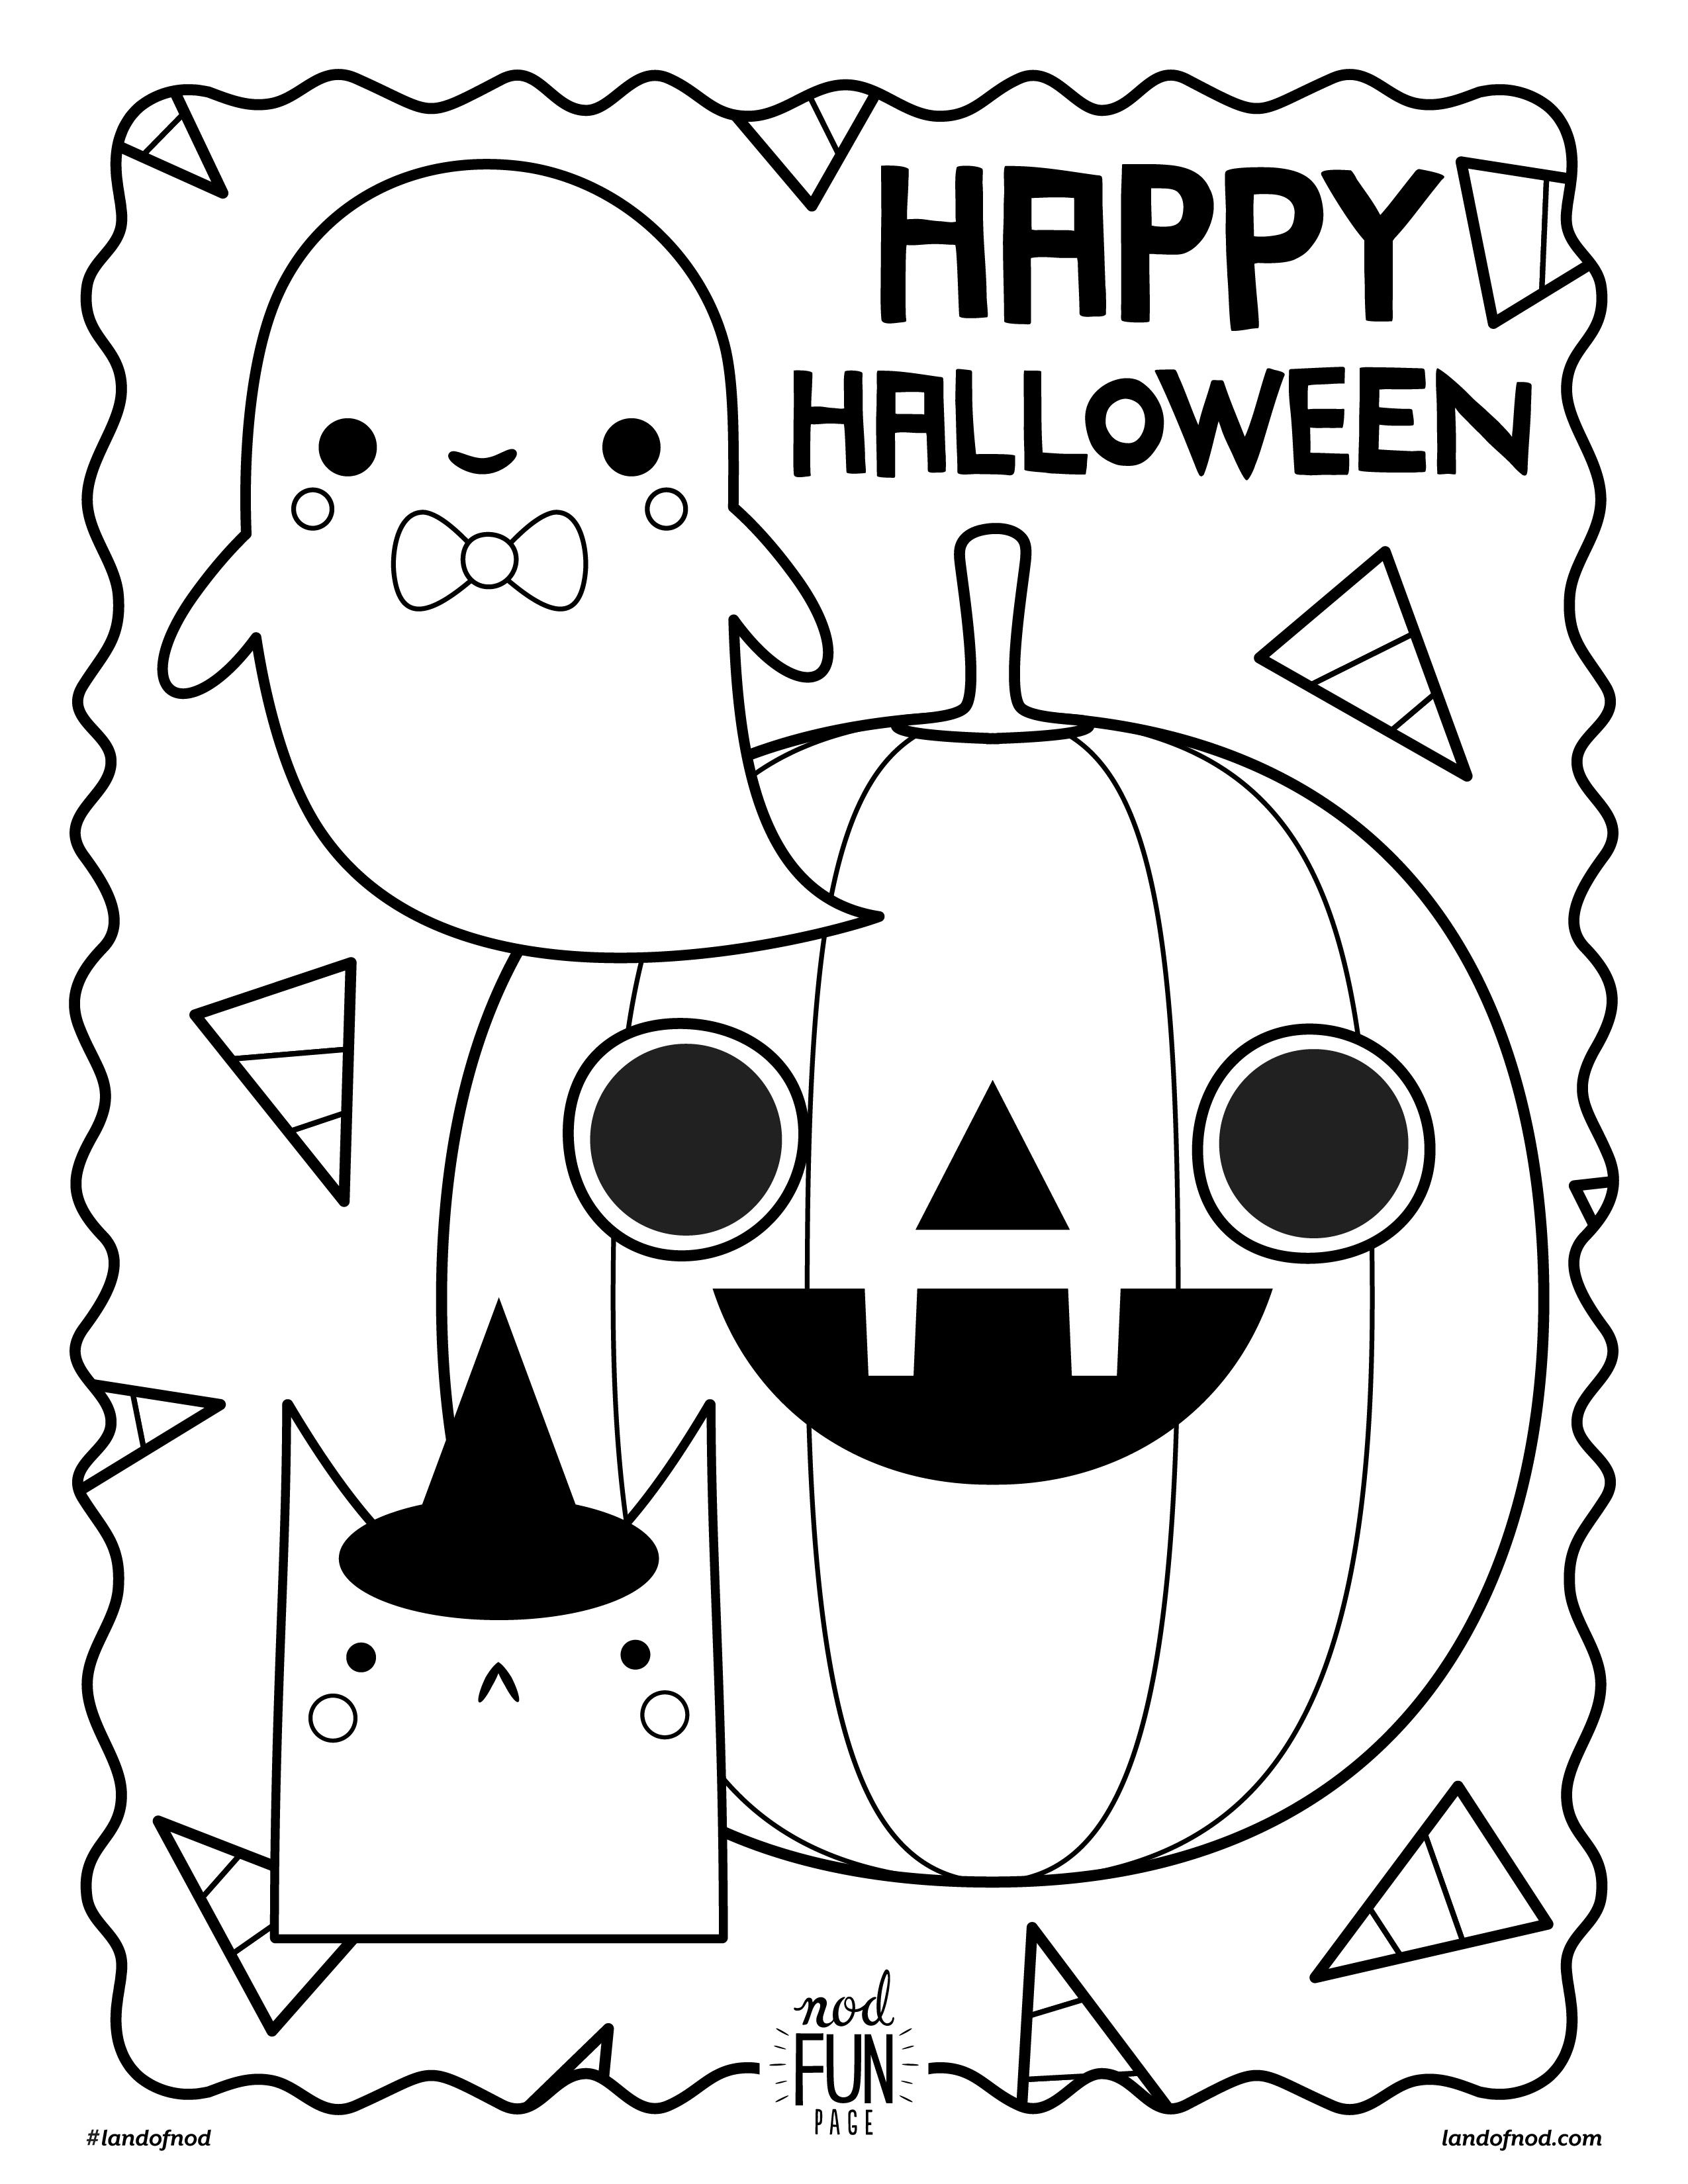 Halloween Coloring Pages - Easy Peasy and Fun | 3300x2550